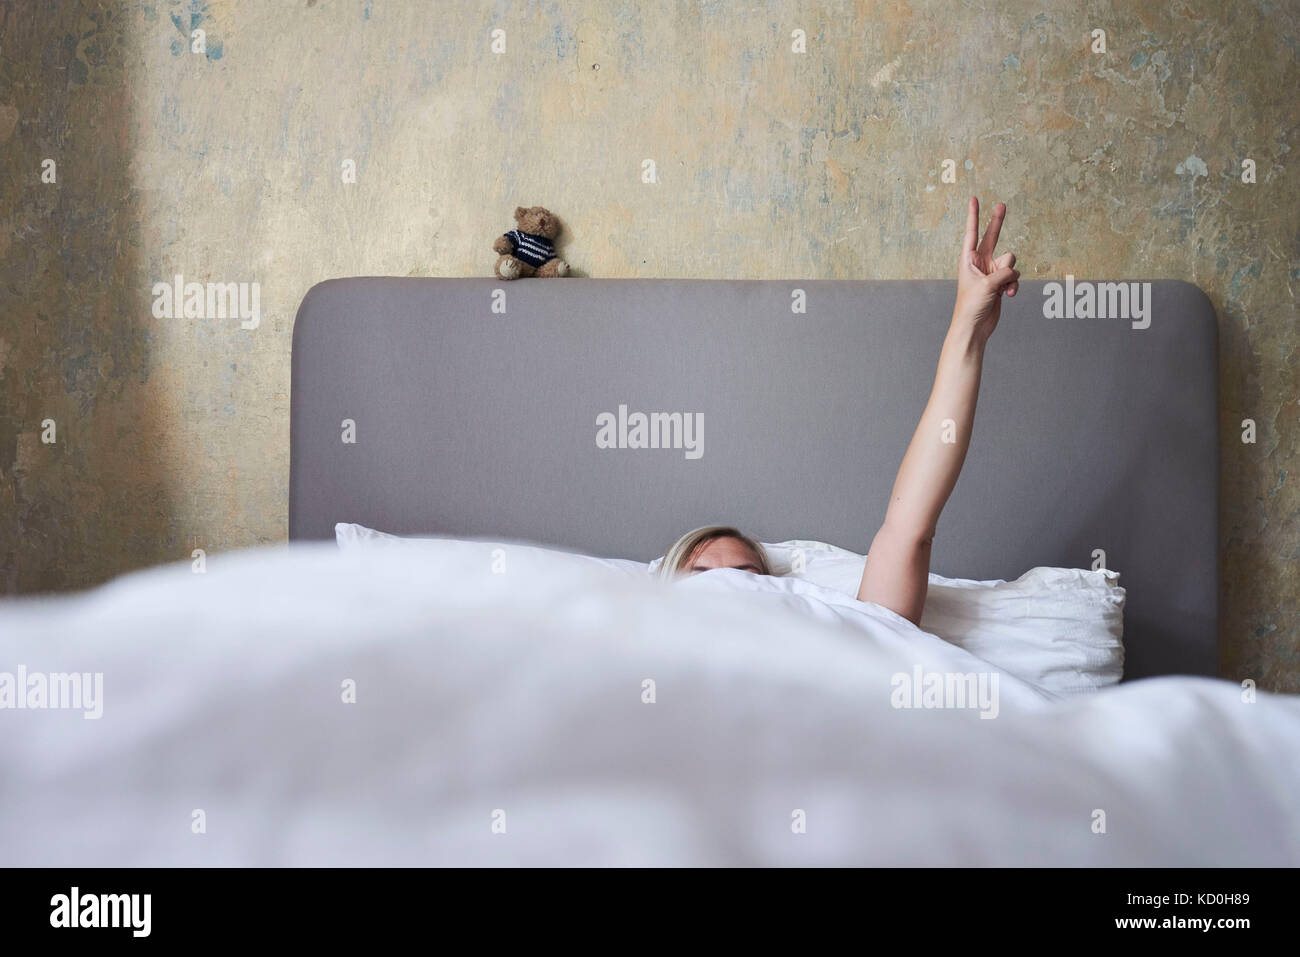 Woman in bed, hiding under covers, arm in air, hand showing peace sign - Stock Image